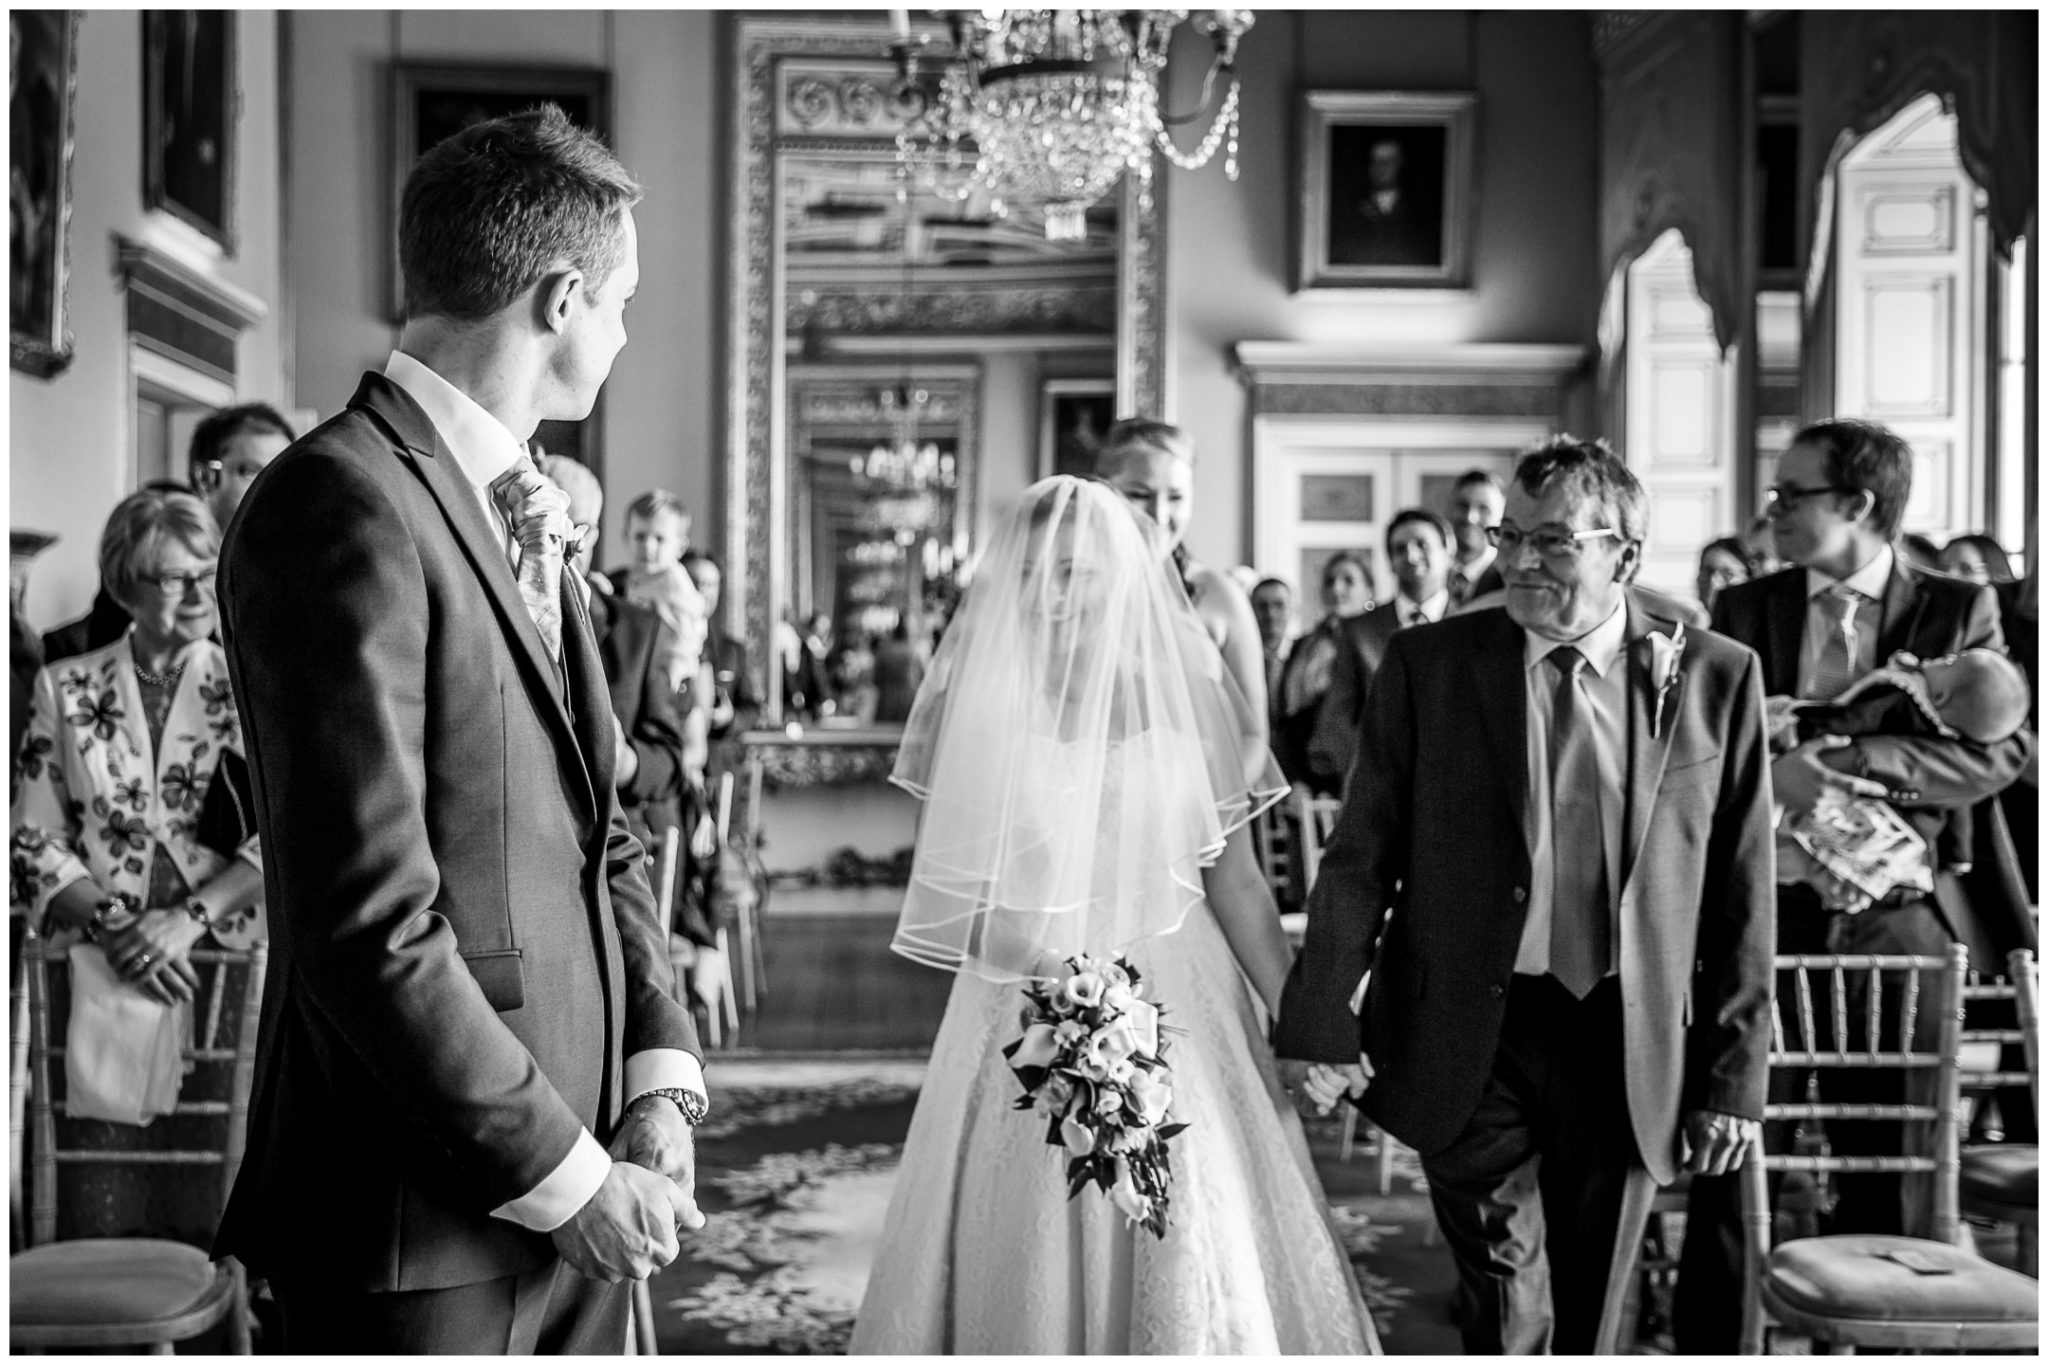 Avington Park wedding photography bride arrives at the front of the ceremony room